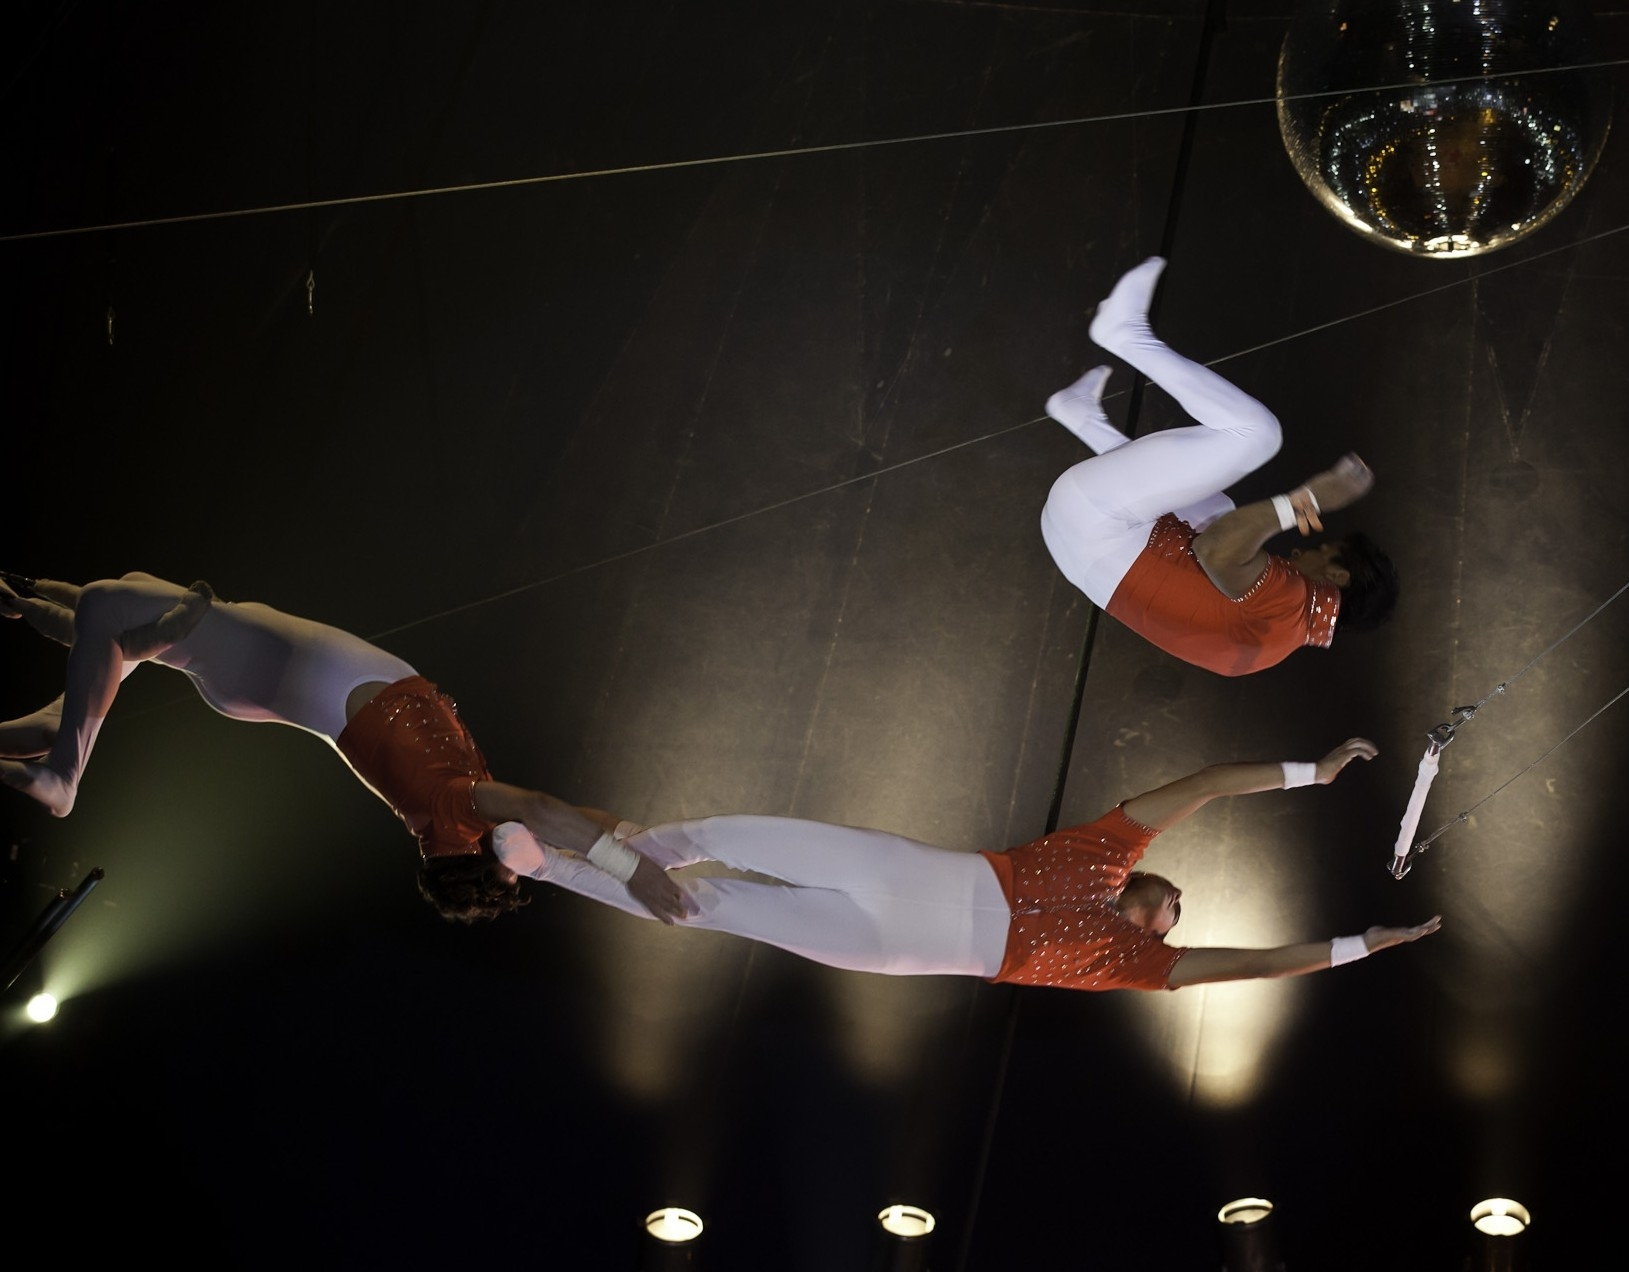 Santus Circus performers on a trapeze.